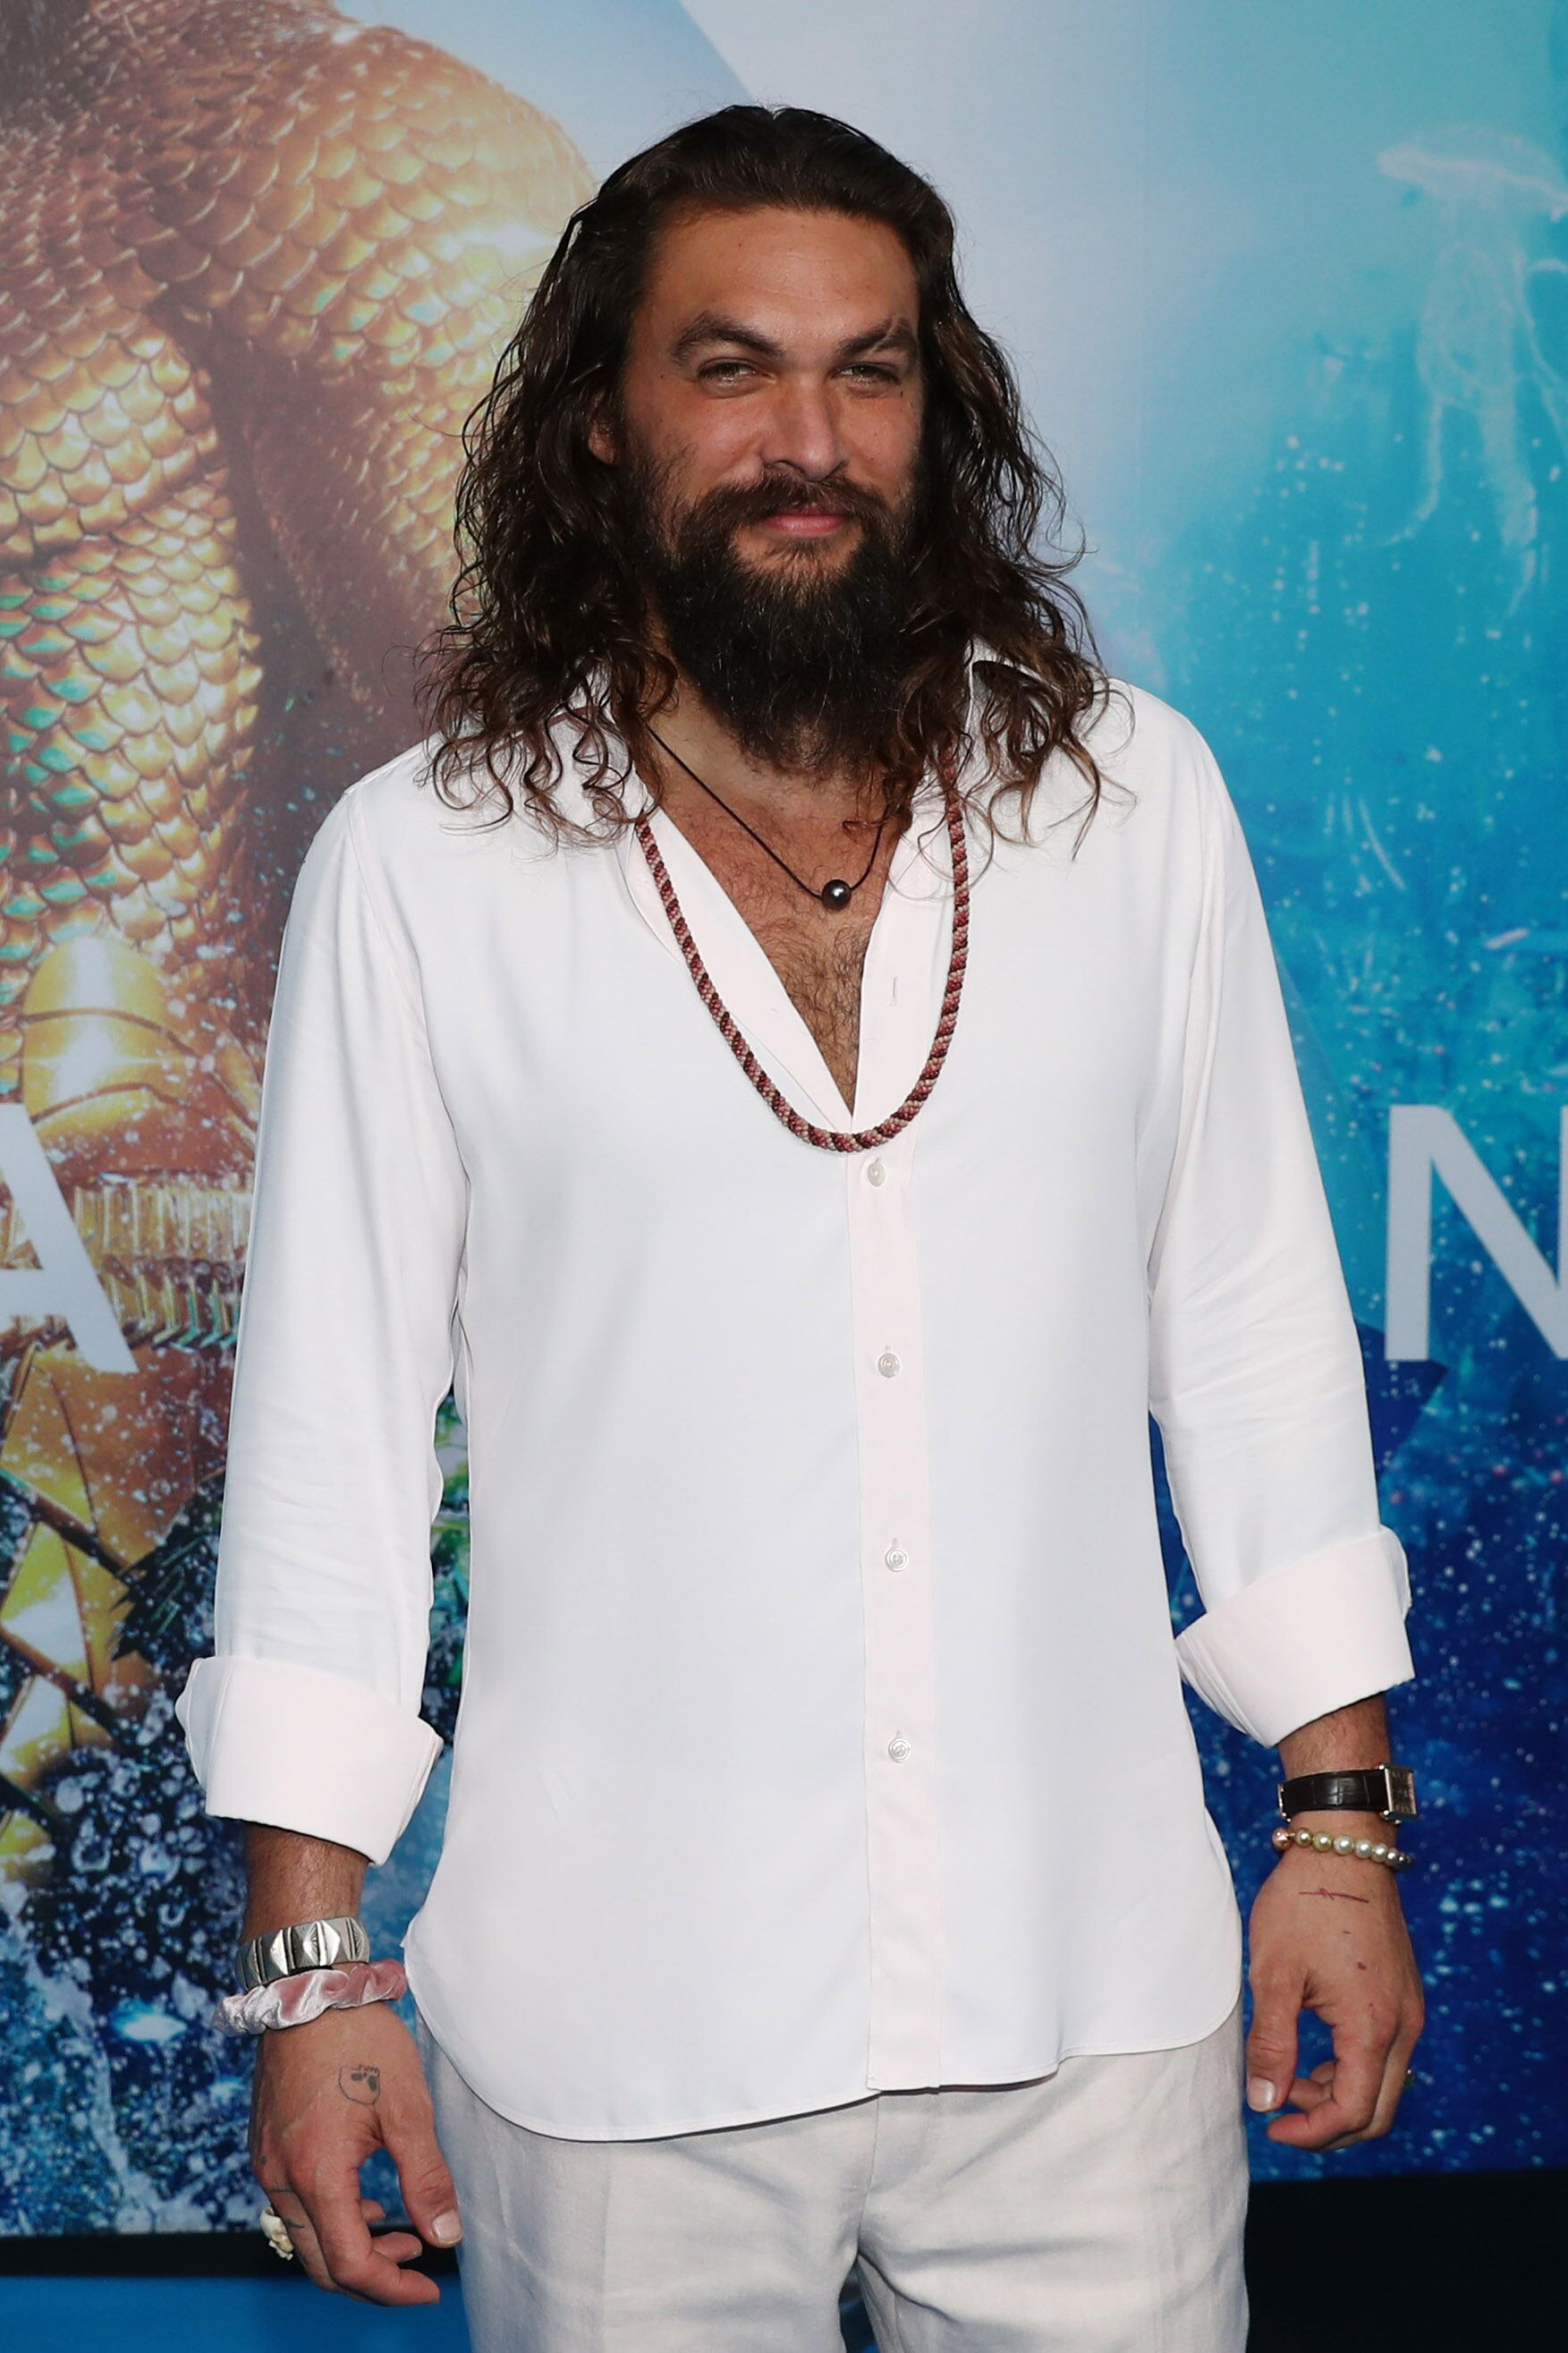 Jason Momoa poses at the Australian premiere of Aquaman | Getty Images